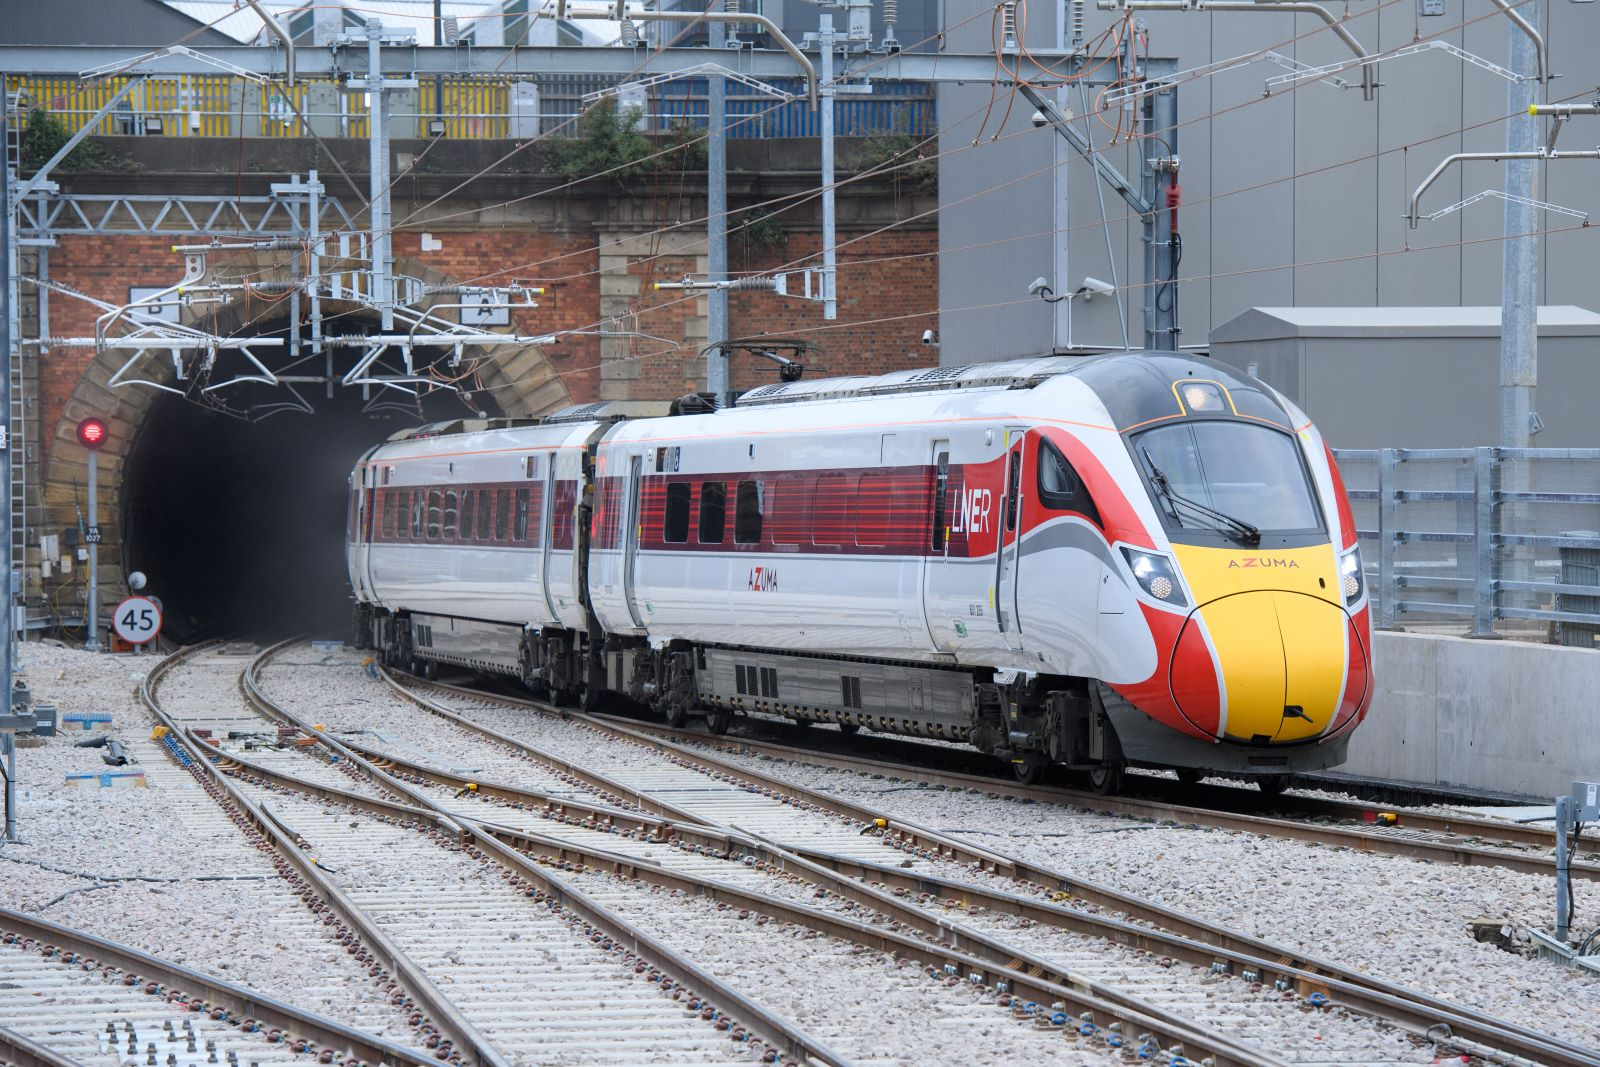 LNER Takes Passengers Through Historic Railway Tunnel For First Time In 40 Years